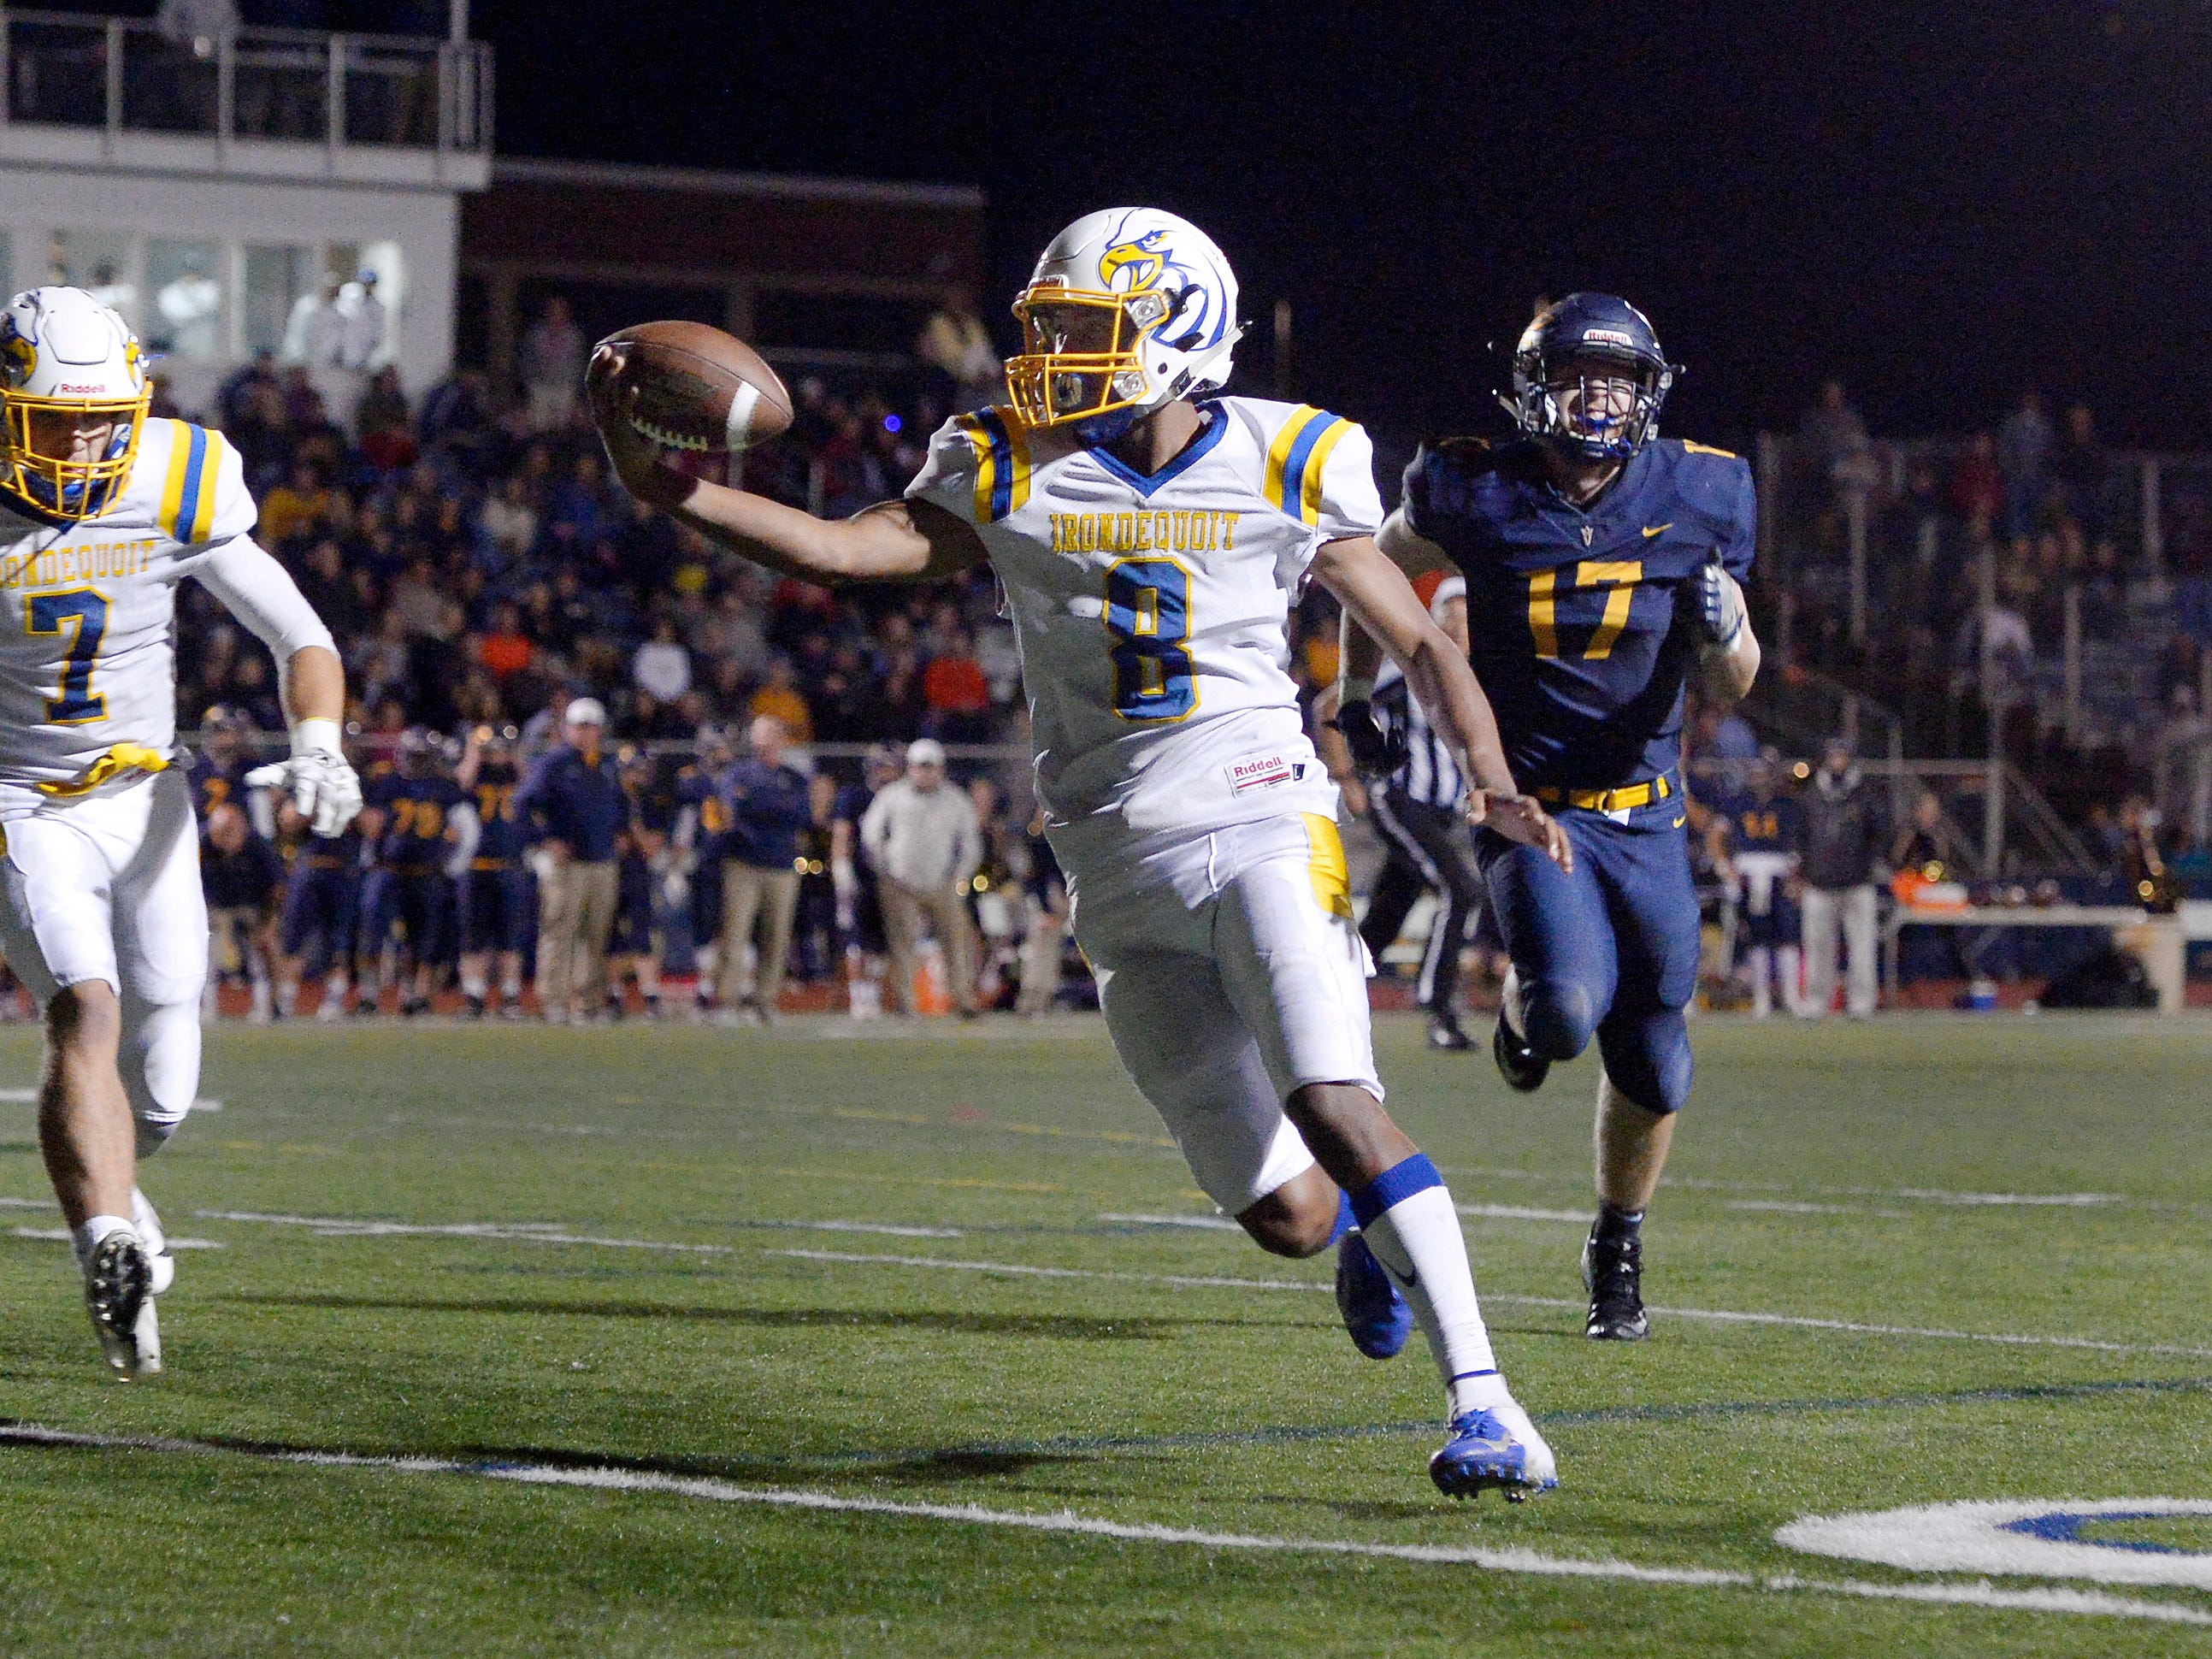 Irondequoit's Freddy June Jr. extends the ball across the goal line for the game-winning touchdown against Victor during a regular season game played at Victor High School, Sunday, Sept. 23, 2018. Irondequoit beat Victor 28-21.